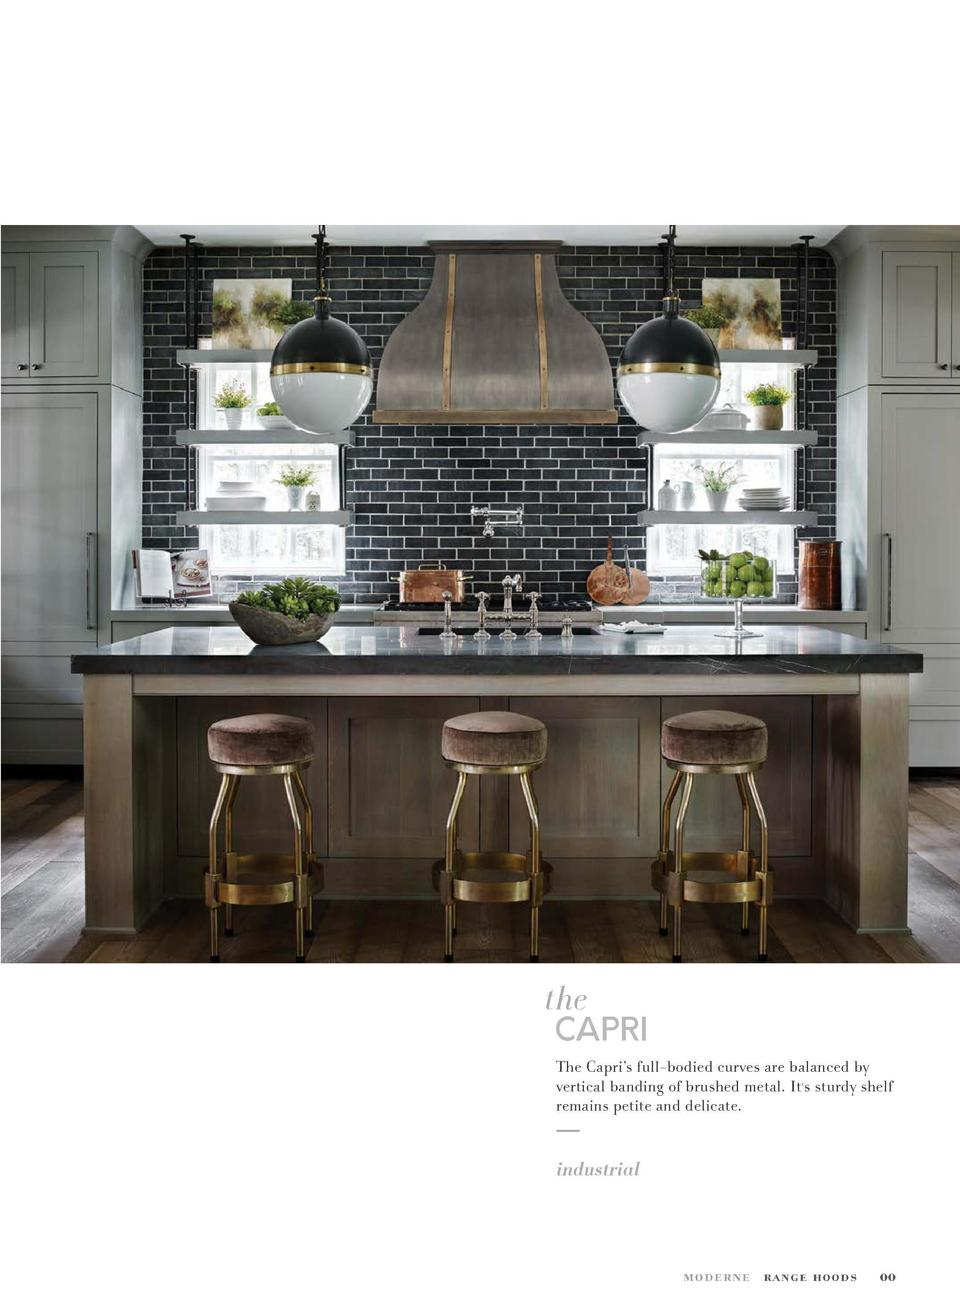 00 Capri MATERIAL  Pewter ACCENTS  Brass Bands   Rivets  the  CAPRI The Capri   s full-bodied curves are balanced by verti...